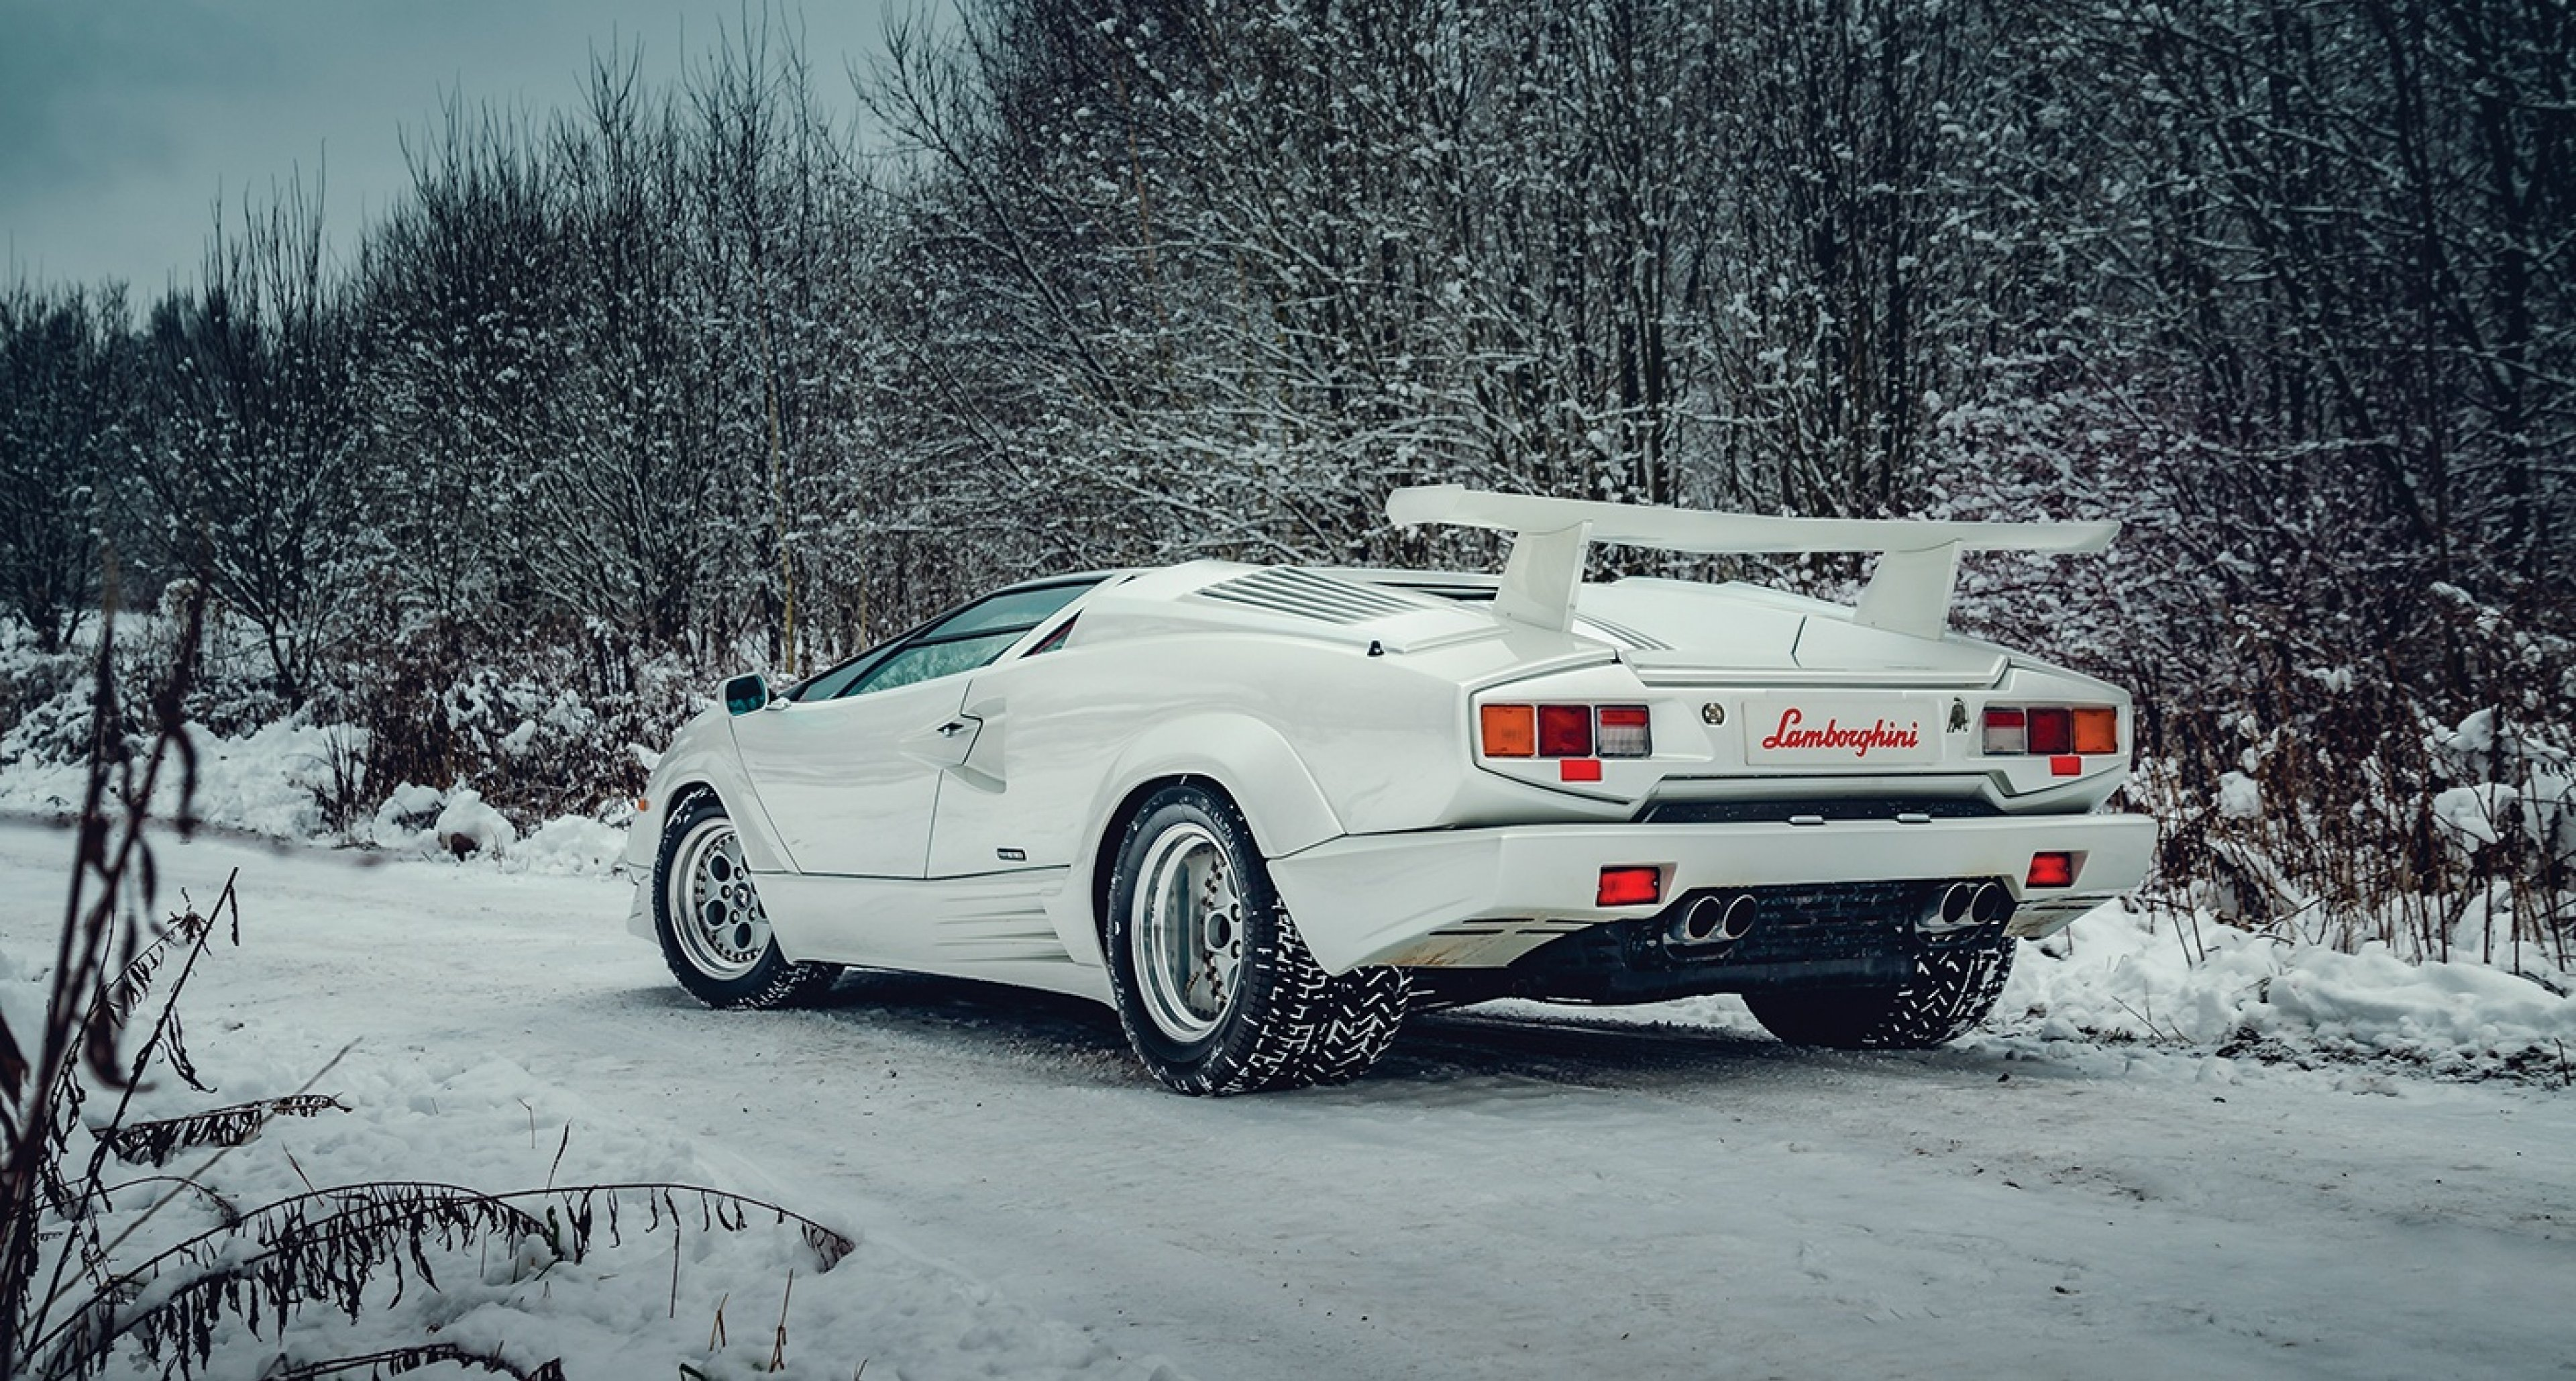 How Could We Give This Snow White Lamborghini Countach The